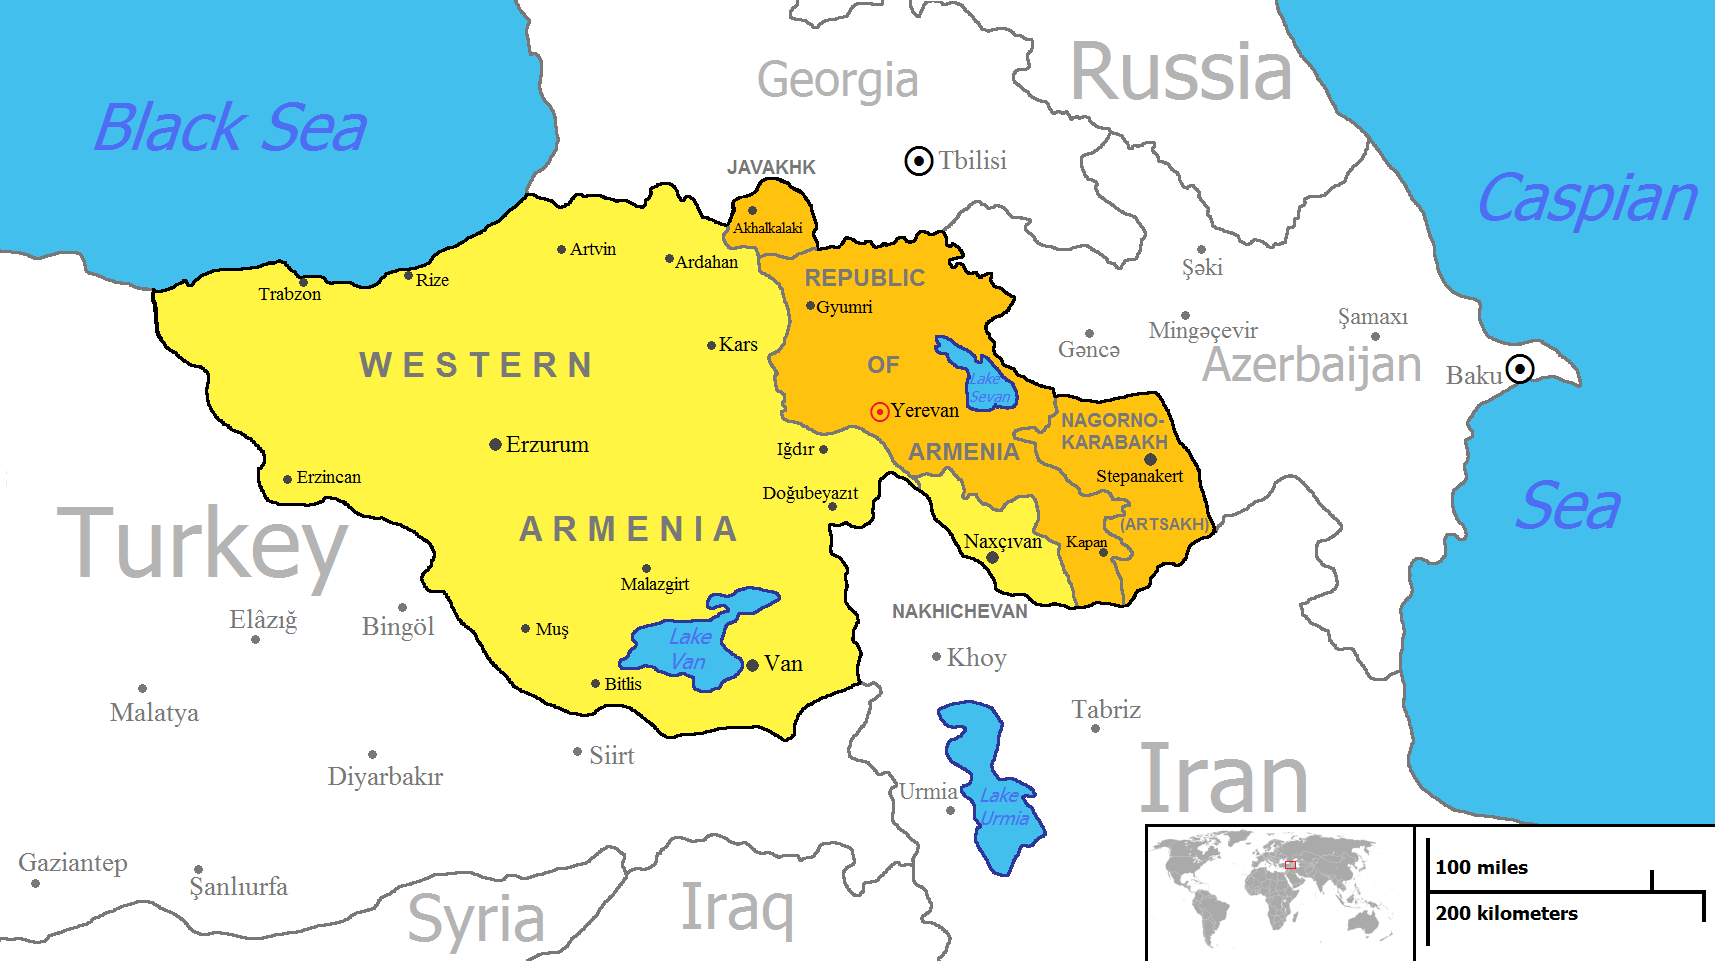 The modern concept of United Armenia as claimed by the Armenian